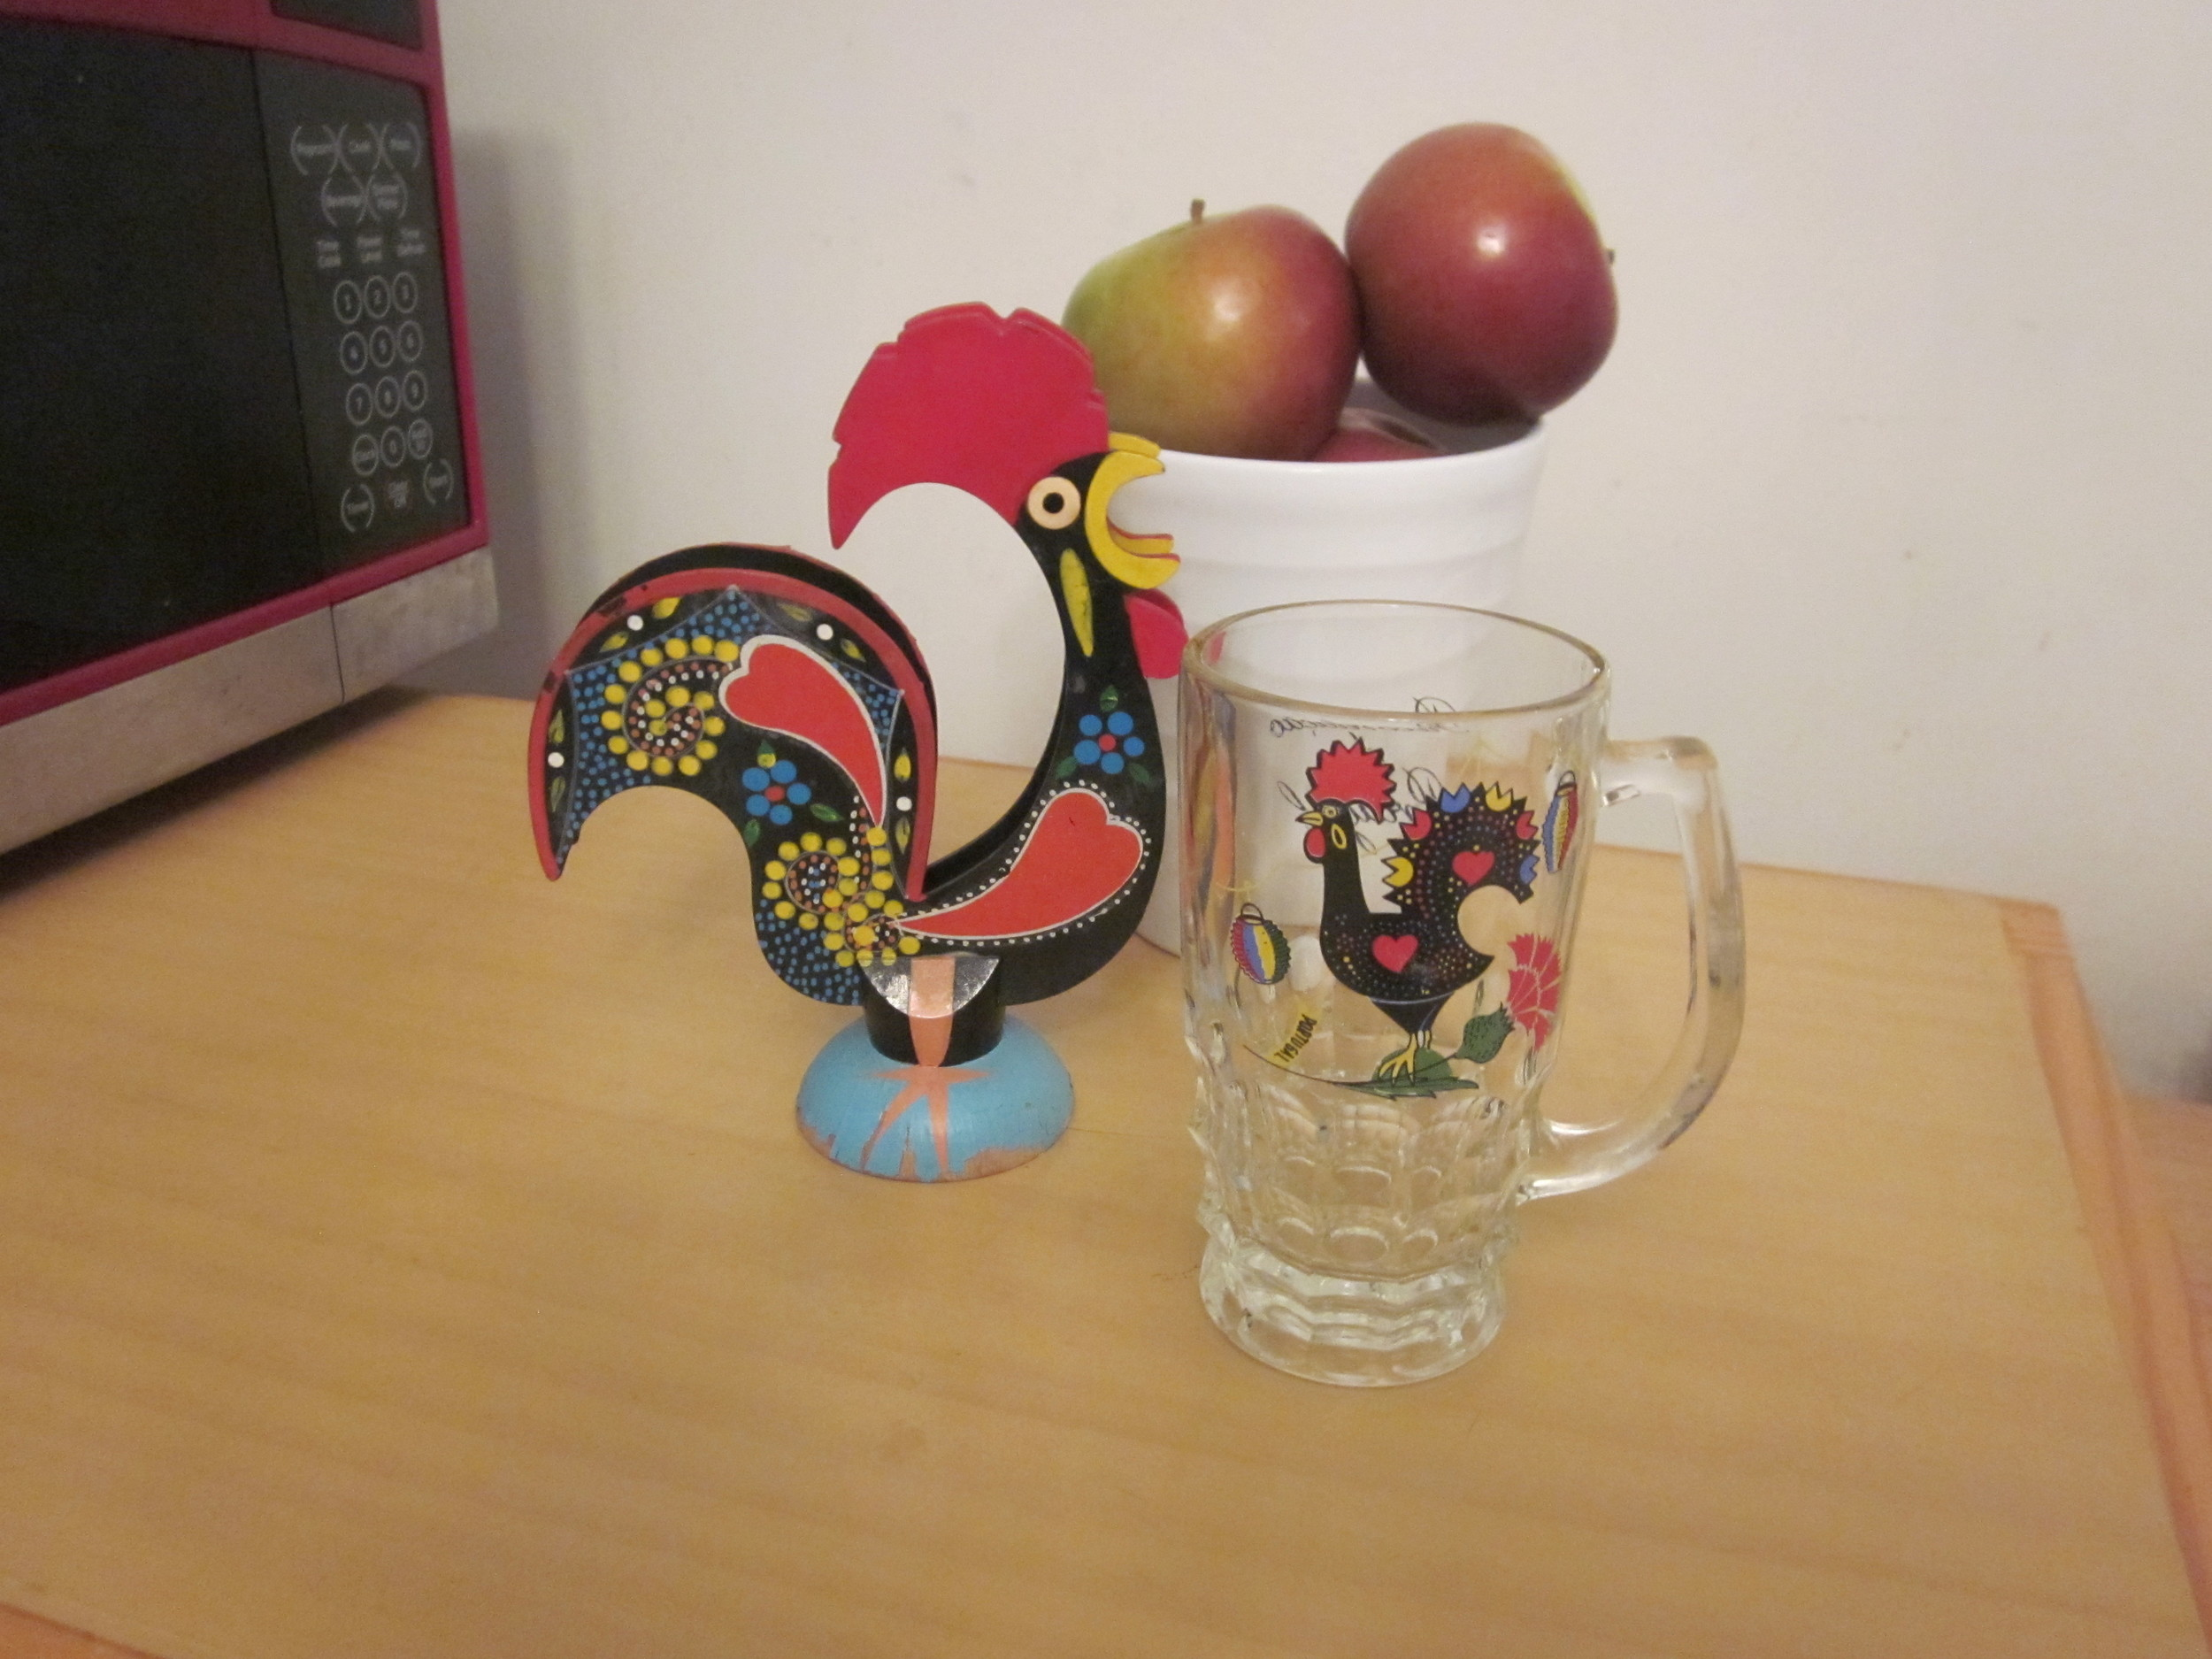 WAKE-UP CALL This rooster, a well-loved symbol of Portugal, graces the coffee mug and napkin holder, both gifts from my late Tia Mary.